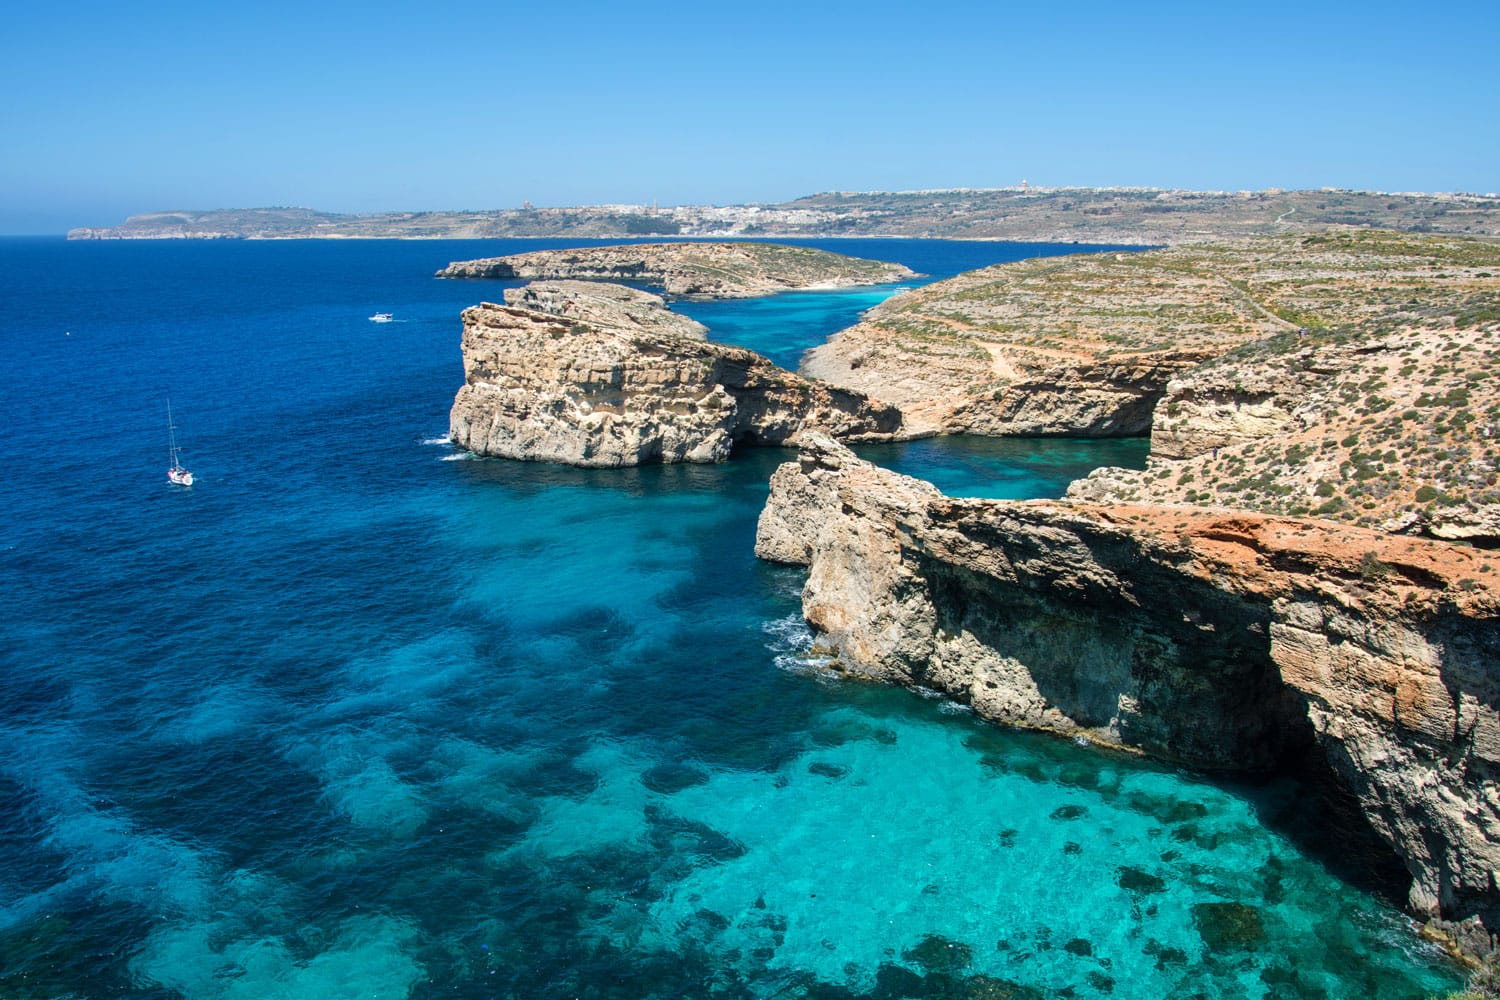 Comino island of the Maltese archipelago between the islands of Malta and Gozo in the Mediterranean Sea